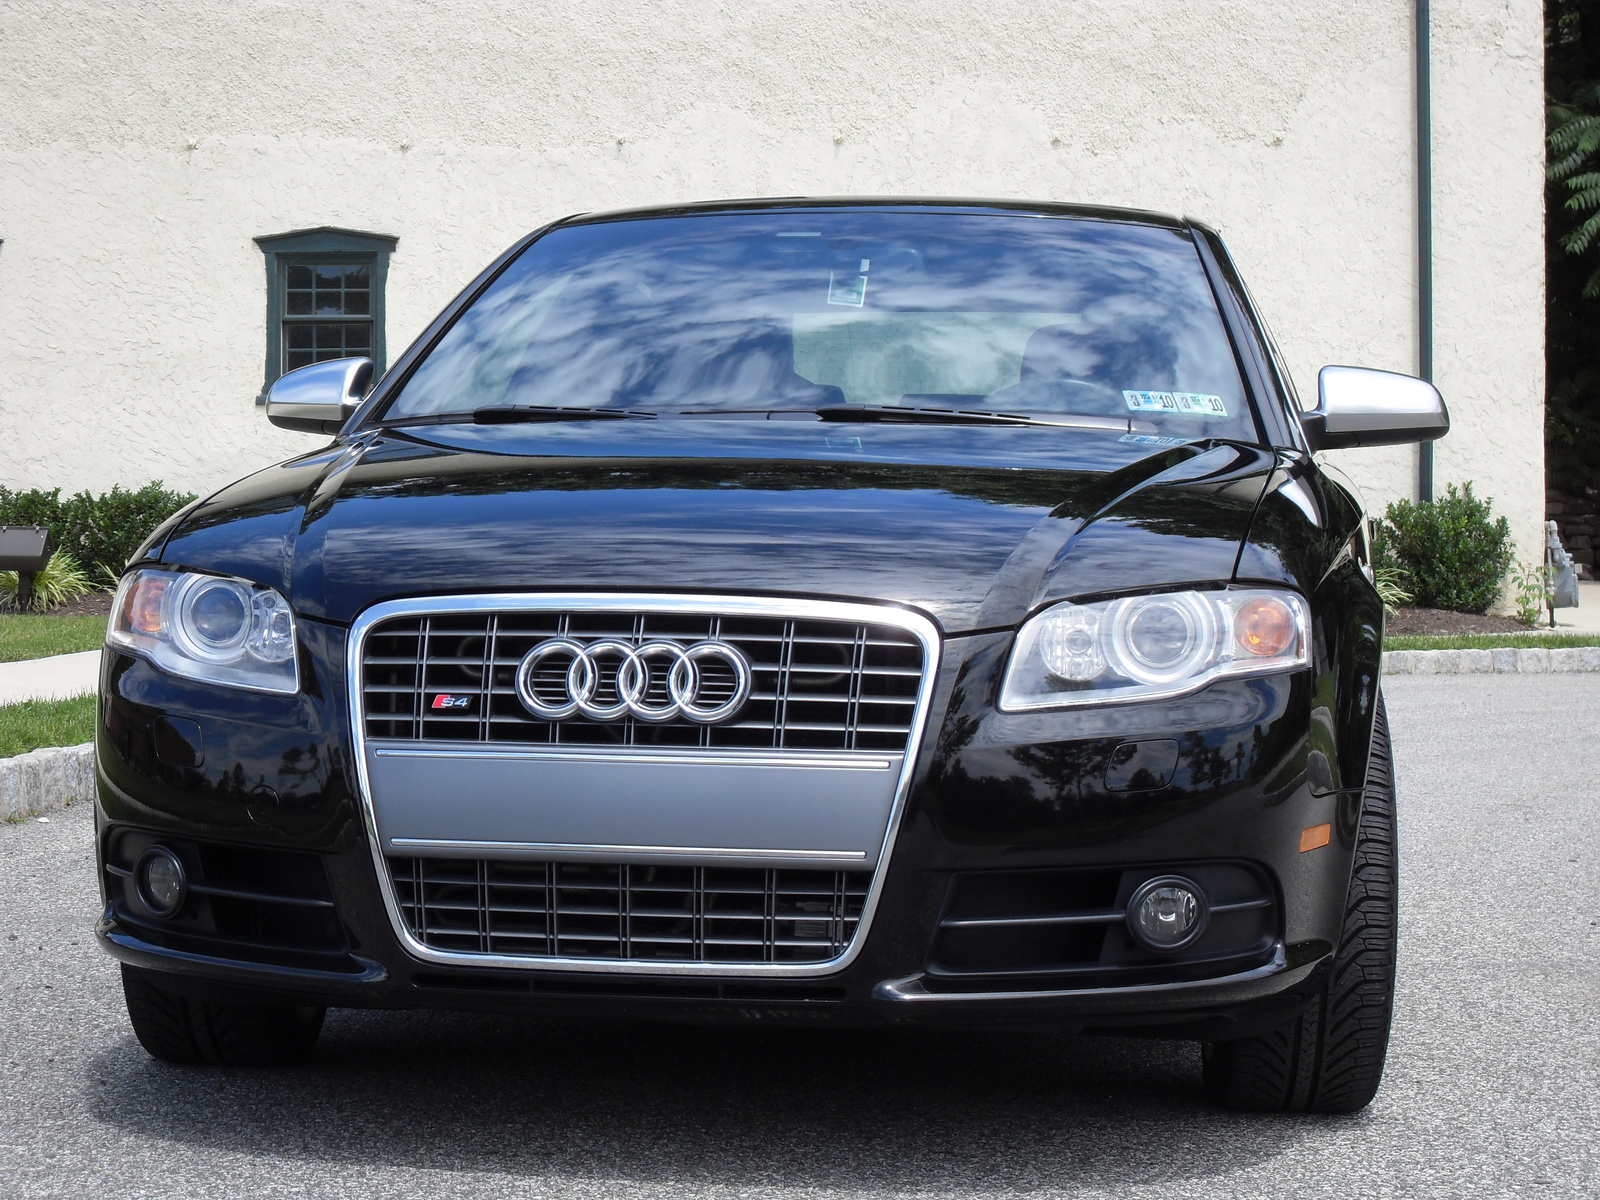 Picture of 2006 Audi S4 4 Dr Sport Sedan